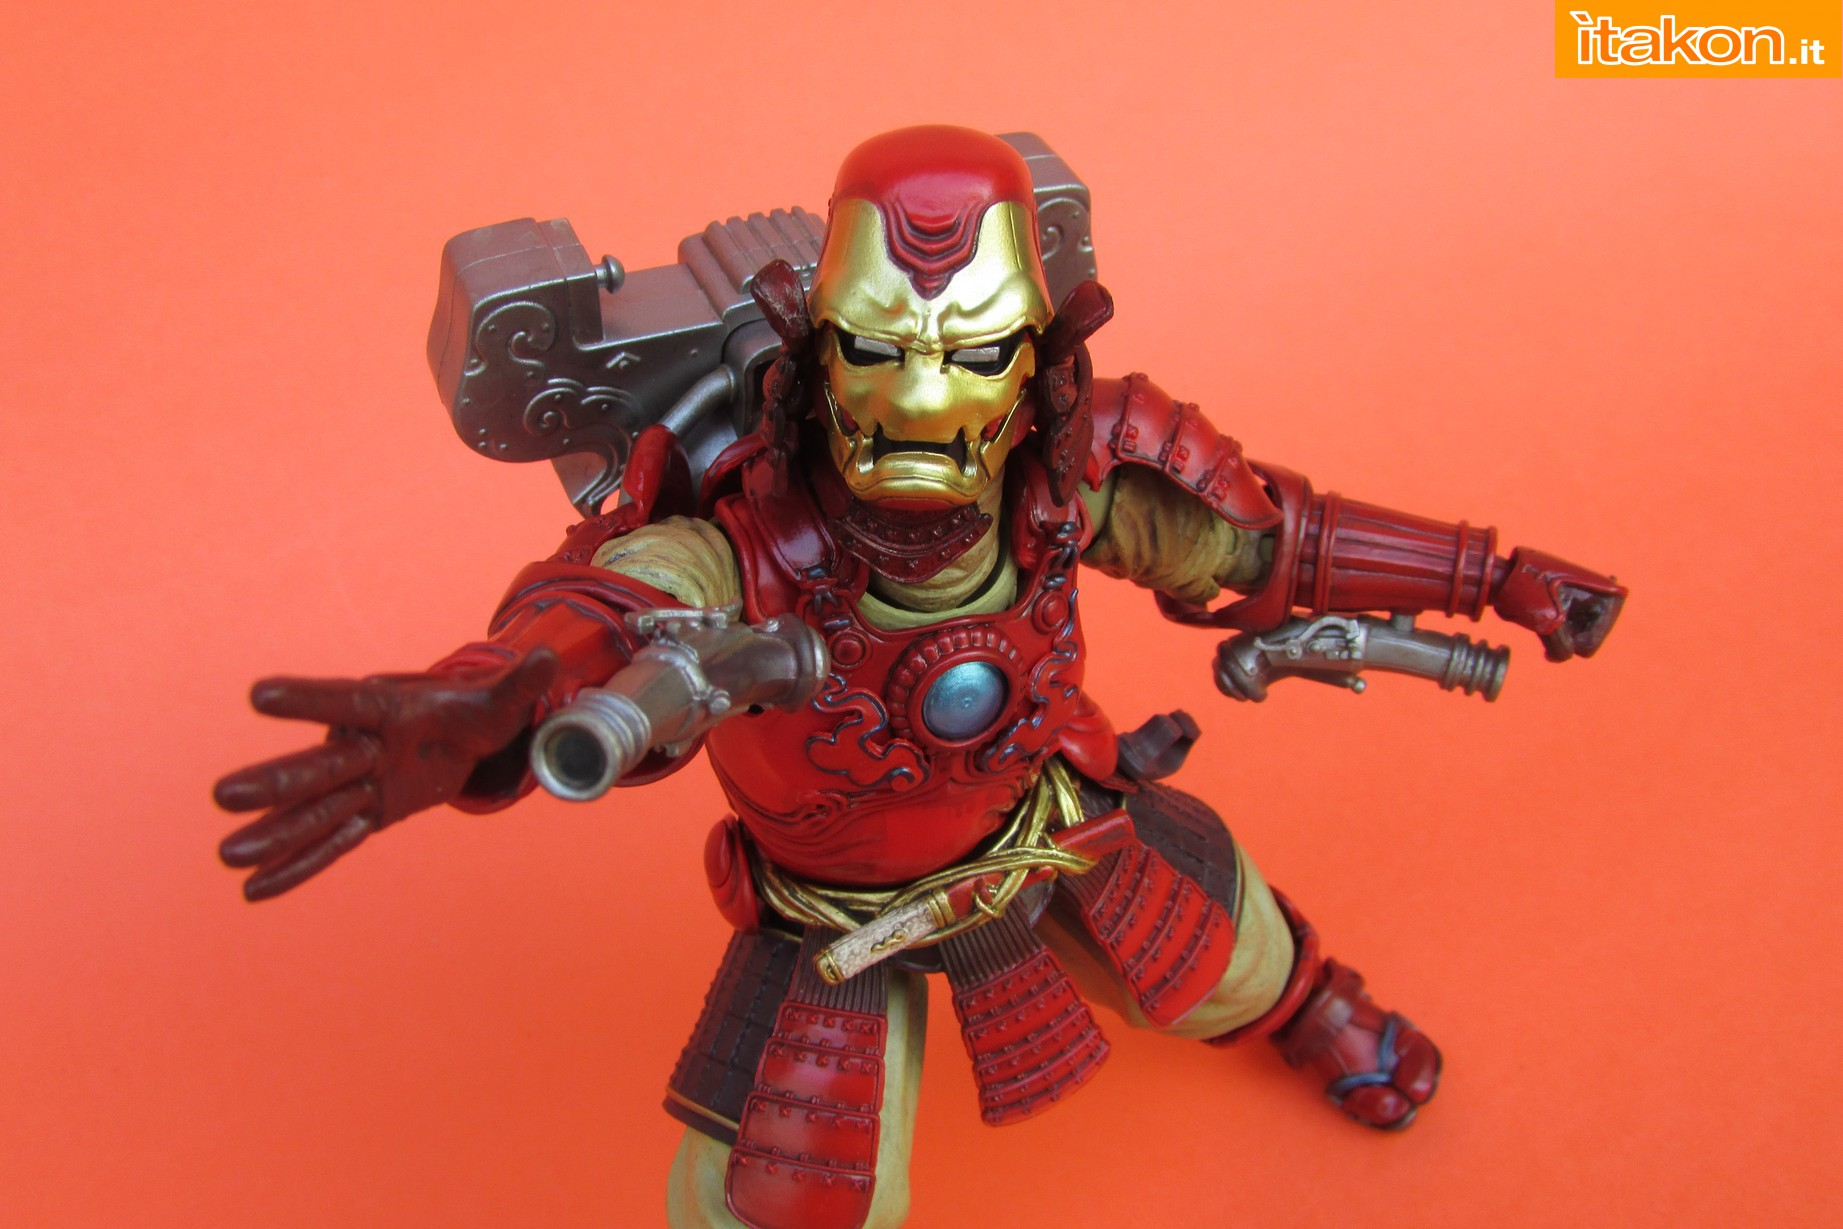 Link a Marvel Comics Koutetsu Samurai Iron Man Mark 3 Meishou MANGA REALIZATION review Bandai Itakon.it38